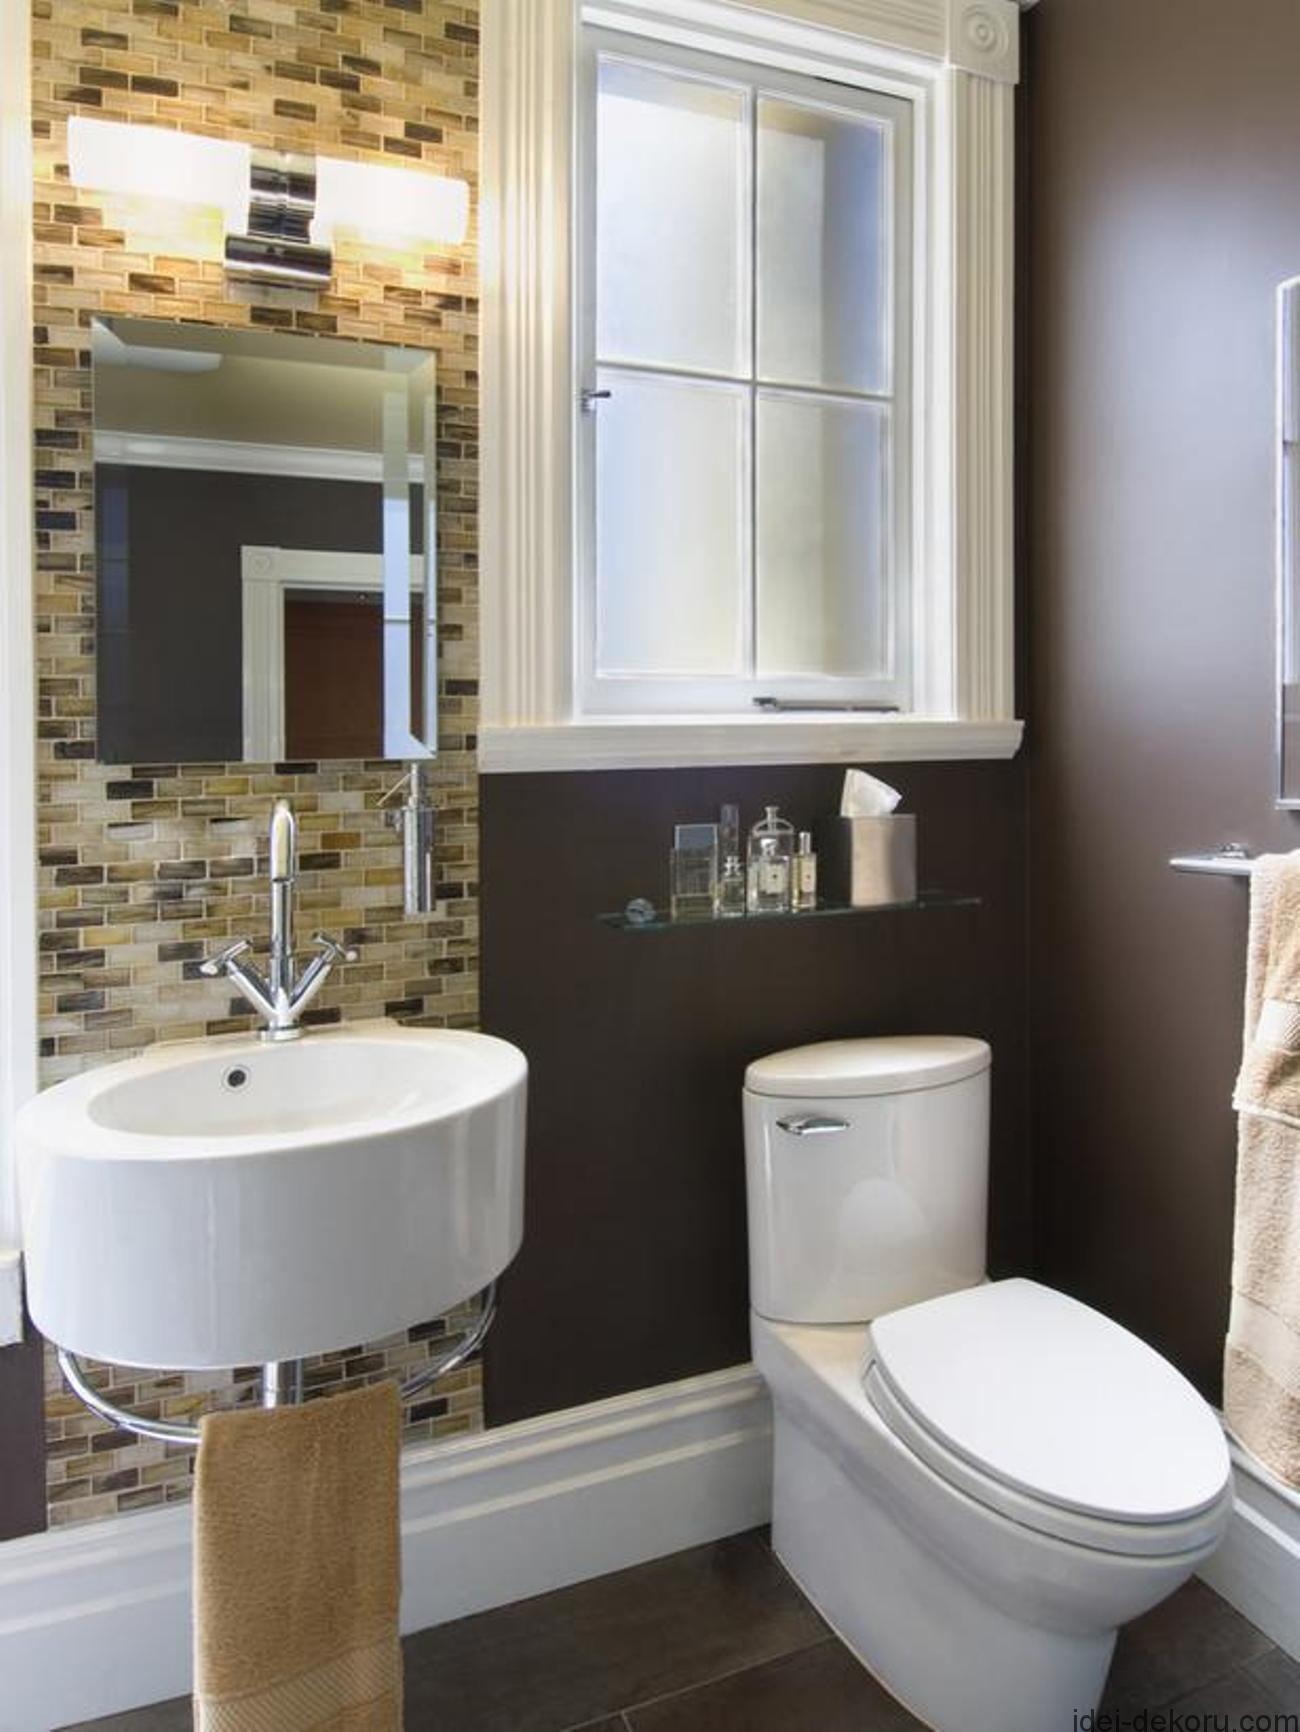 small-bathroom-design-ideas-with-traditional-toilet-and-wall-mounted-sink-with-towel-bar